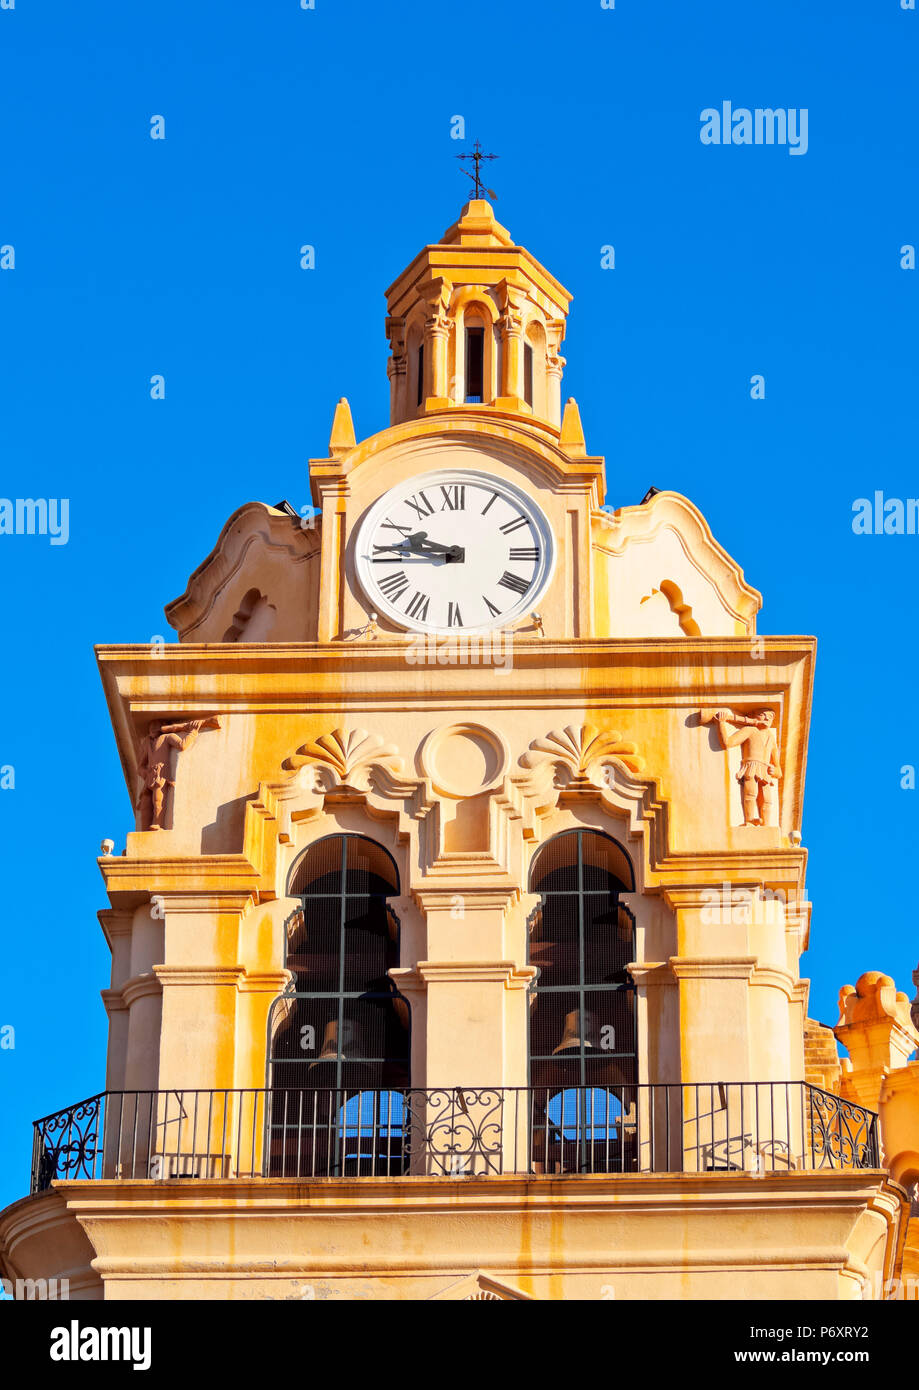 Argentina, Cordoba, Detailed view of the Cathedral of Cordoba. - Stock Image